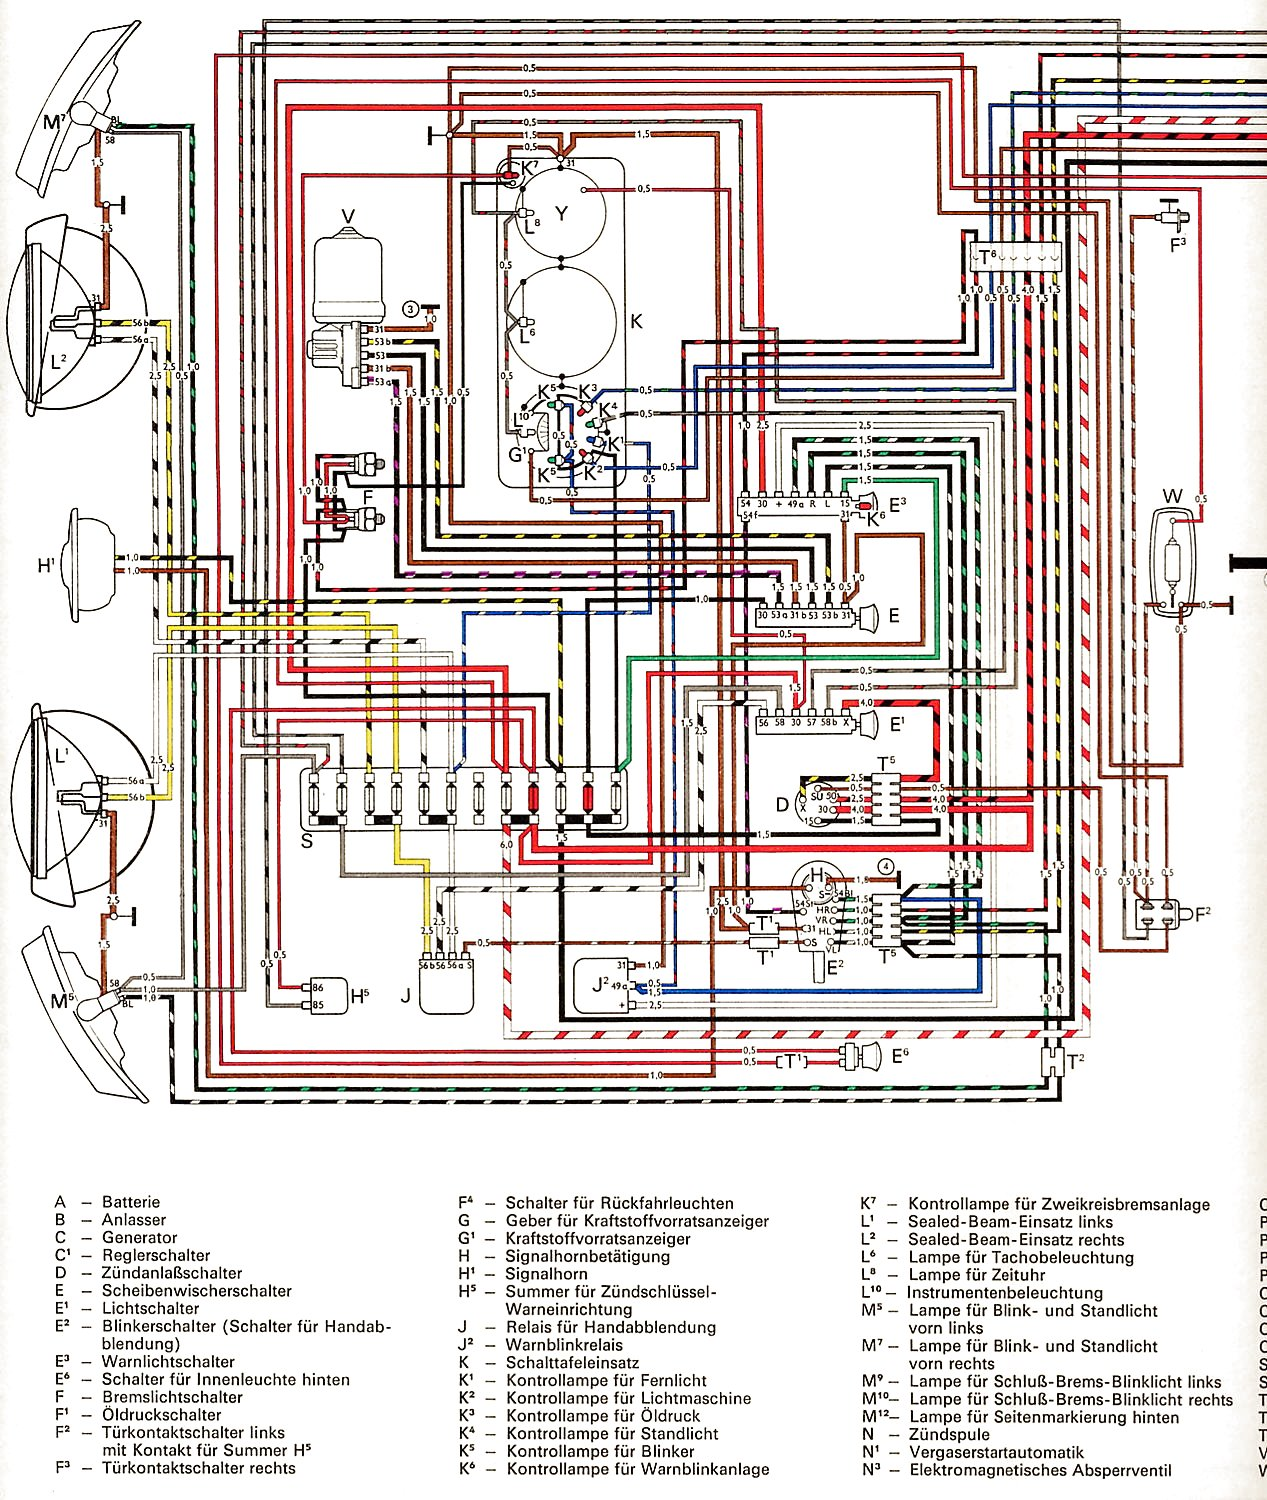 1979 vw wiring diagram - wiring diagram page faith-fix-a -  faith-fix-a.granballodicomo.it  granballodicomo.it